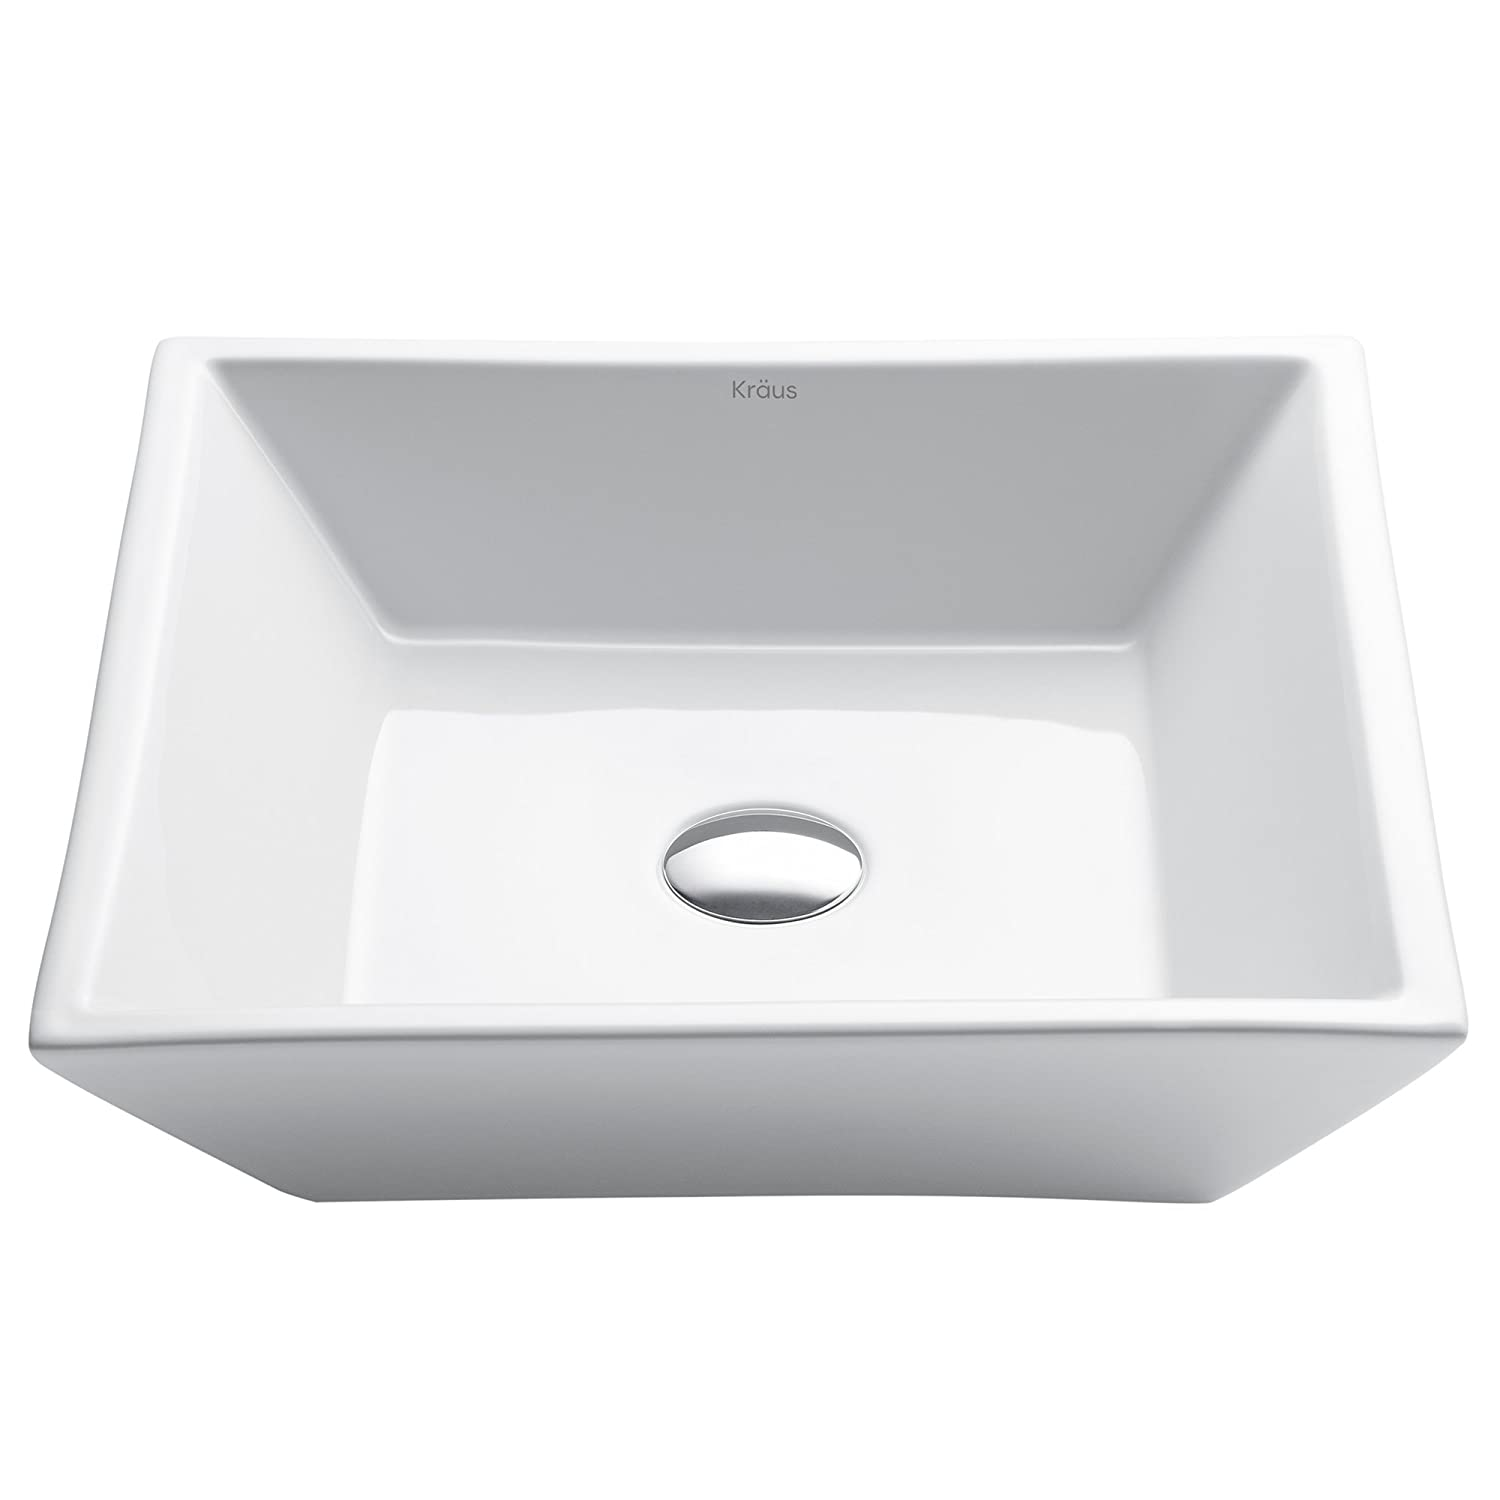 Kraus KCV-125 White Square Ceramic Bathroom Sink by Kraus B00590X77E